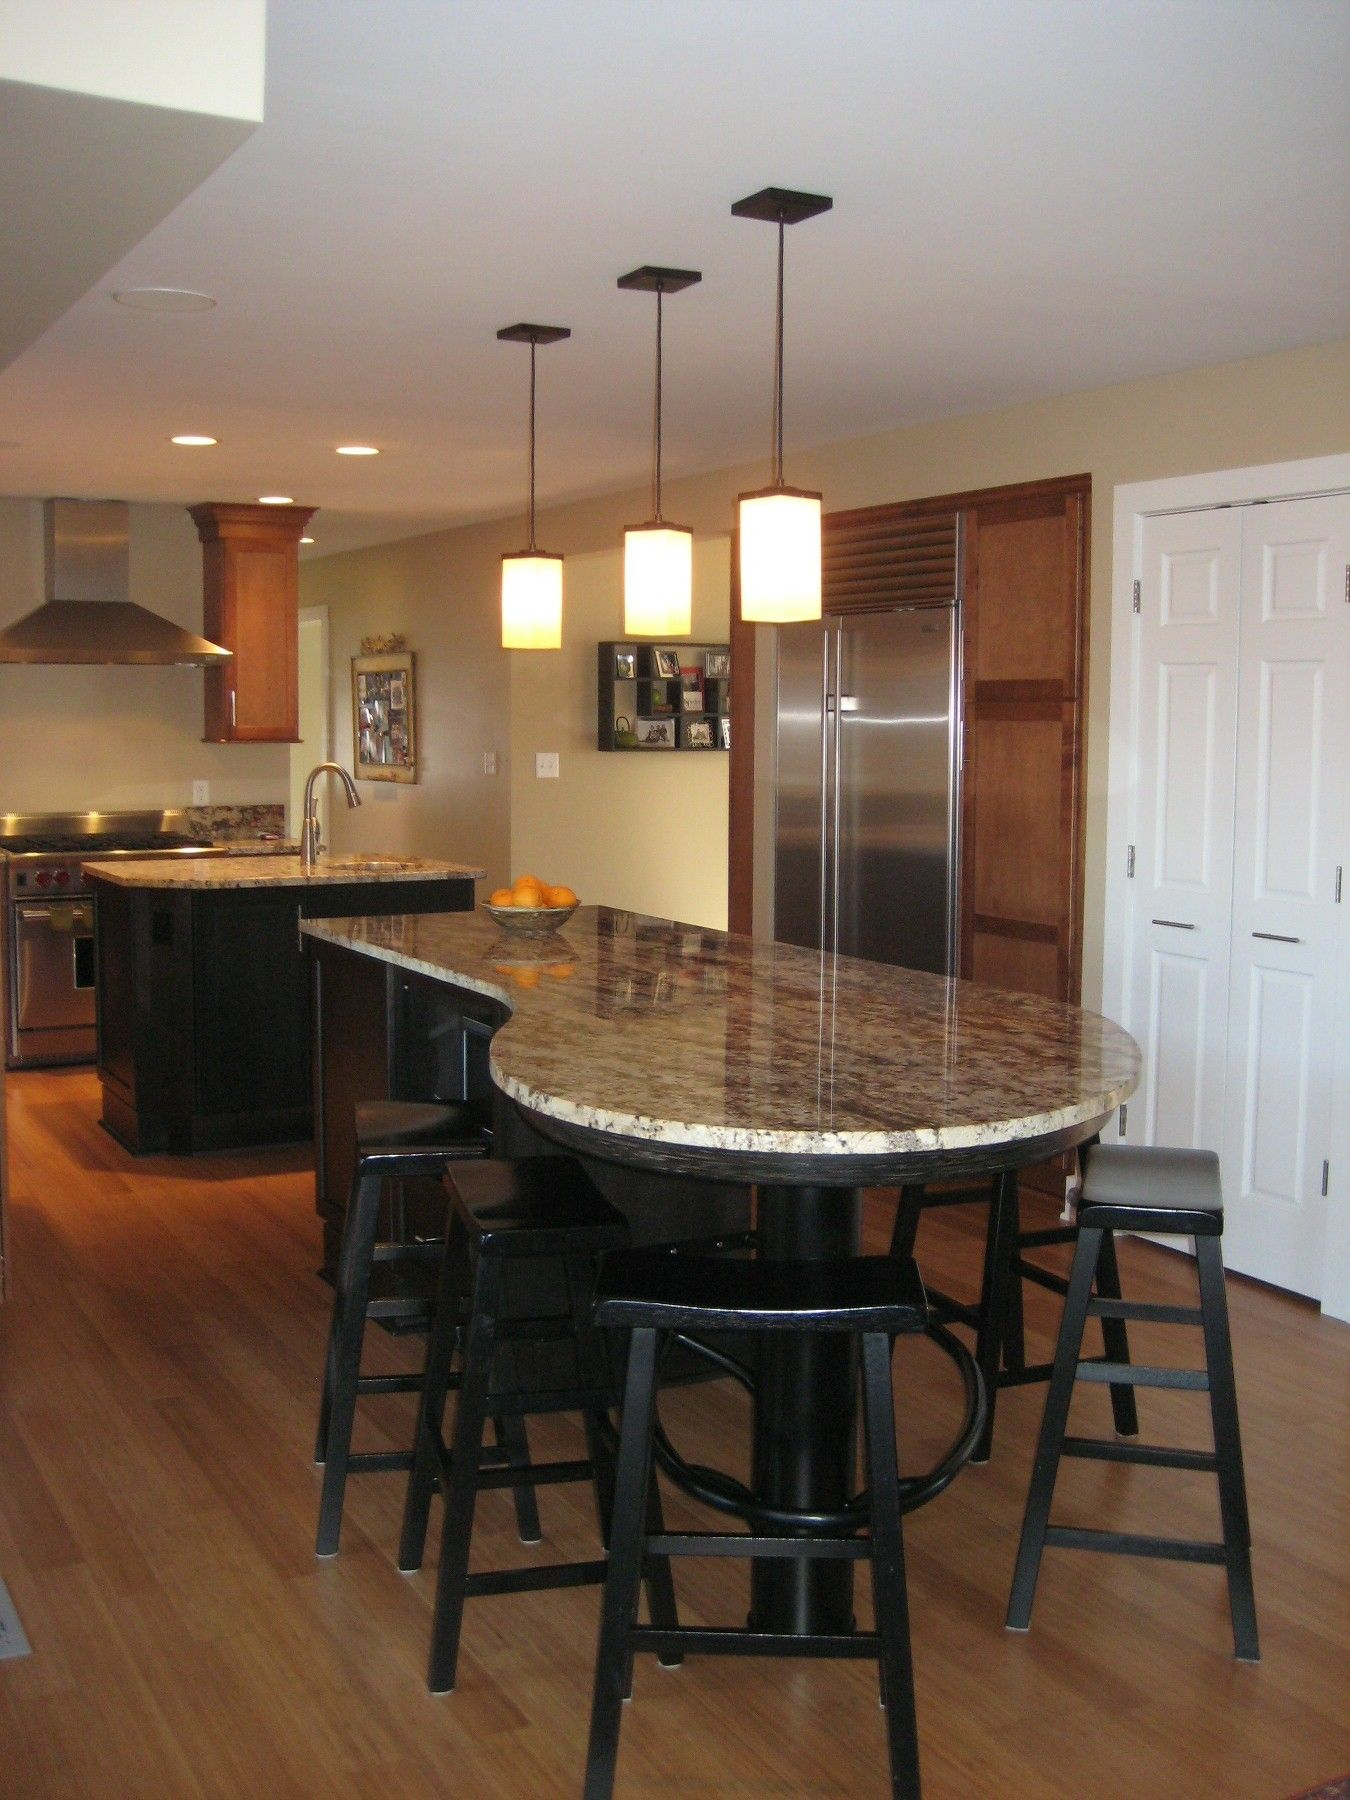 Kitchen Design With Round Island Pin By Linda Demarco On Kitchen Reno Kitchen Island